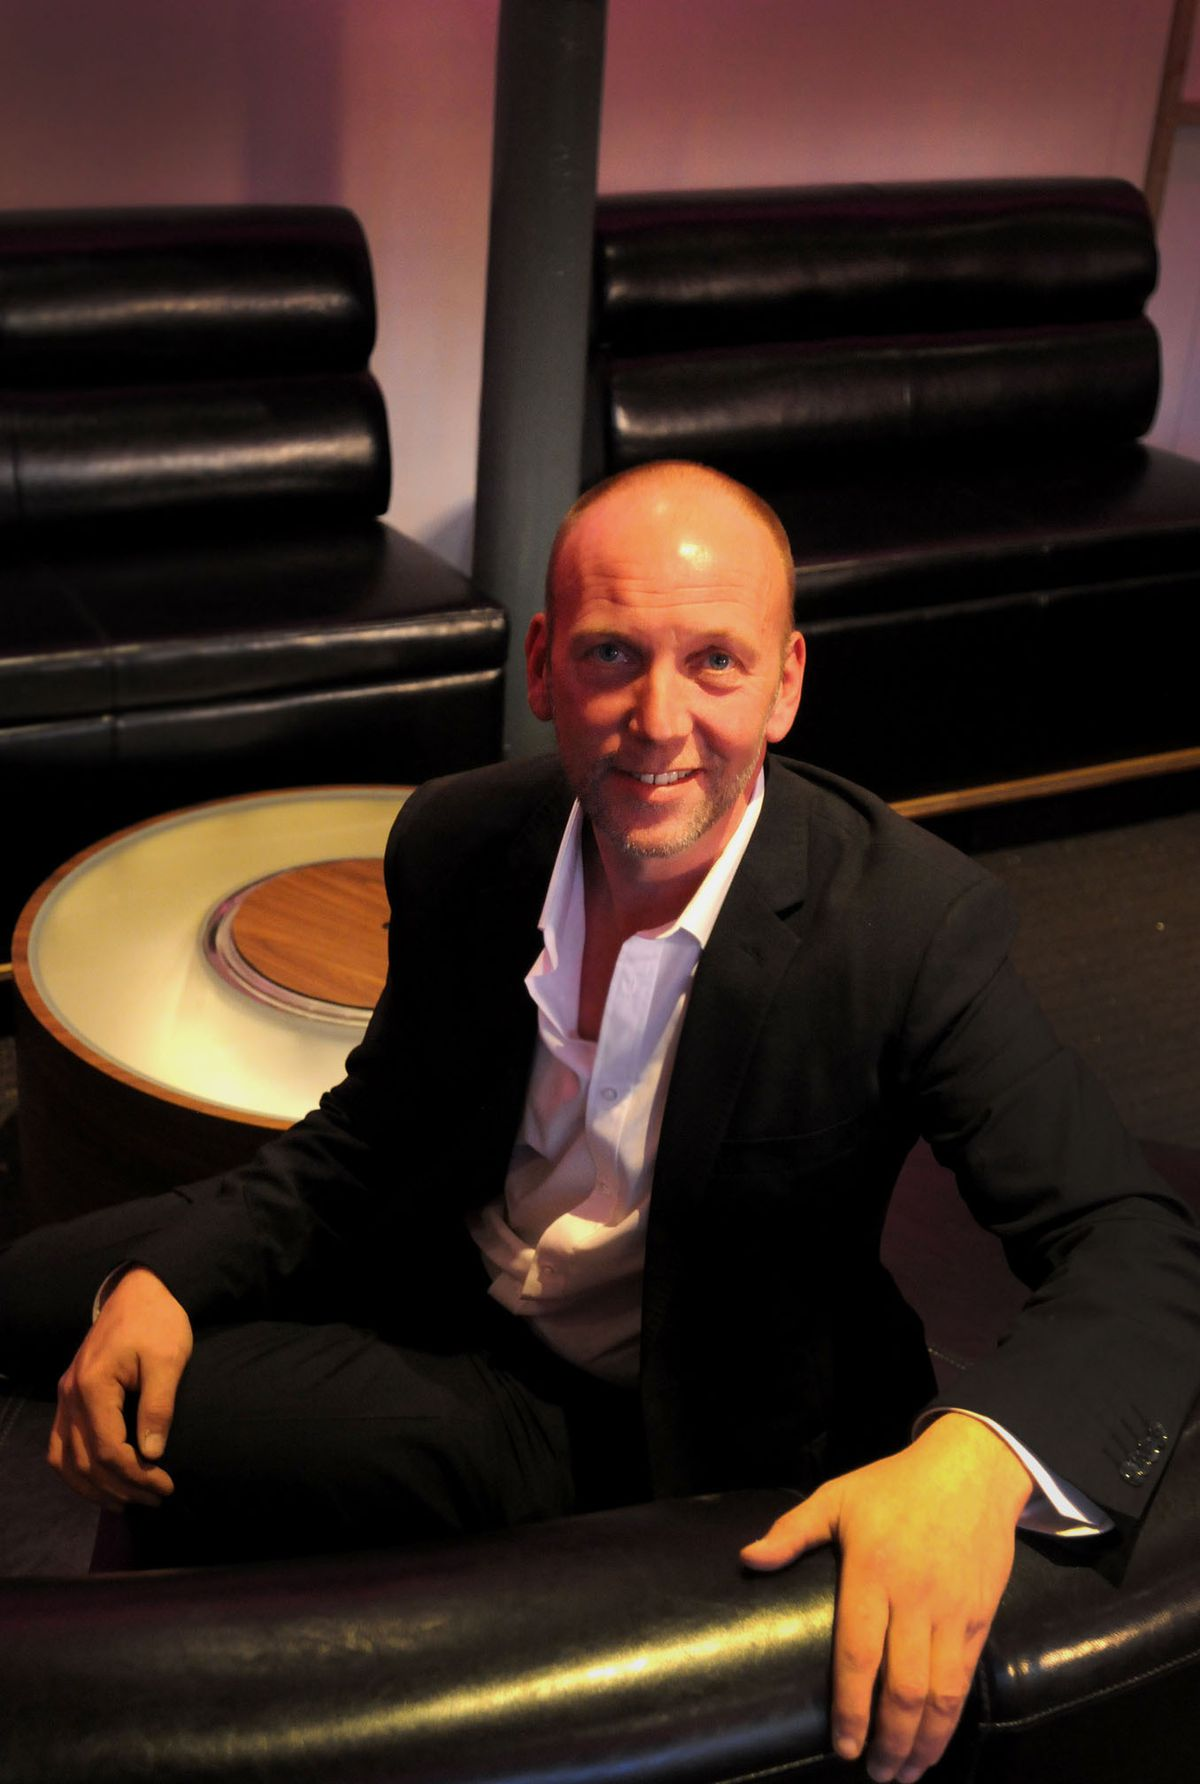 Martin Monahan, owner of nightspots The Buttermarket and Havana Republic